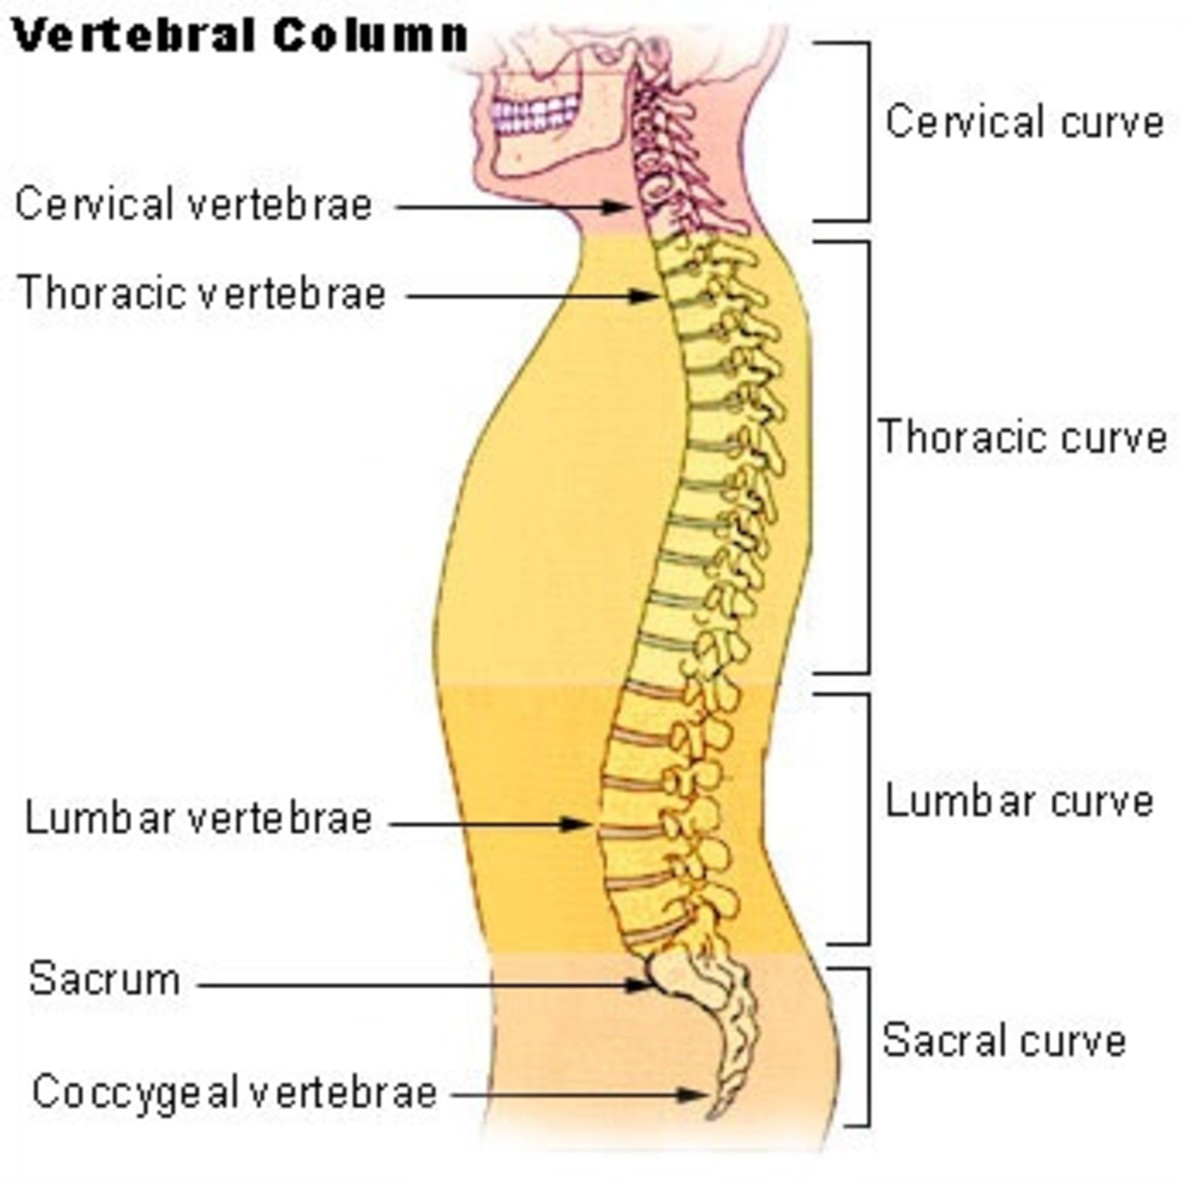 A side view of the vertebral column